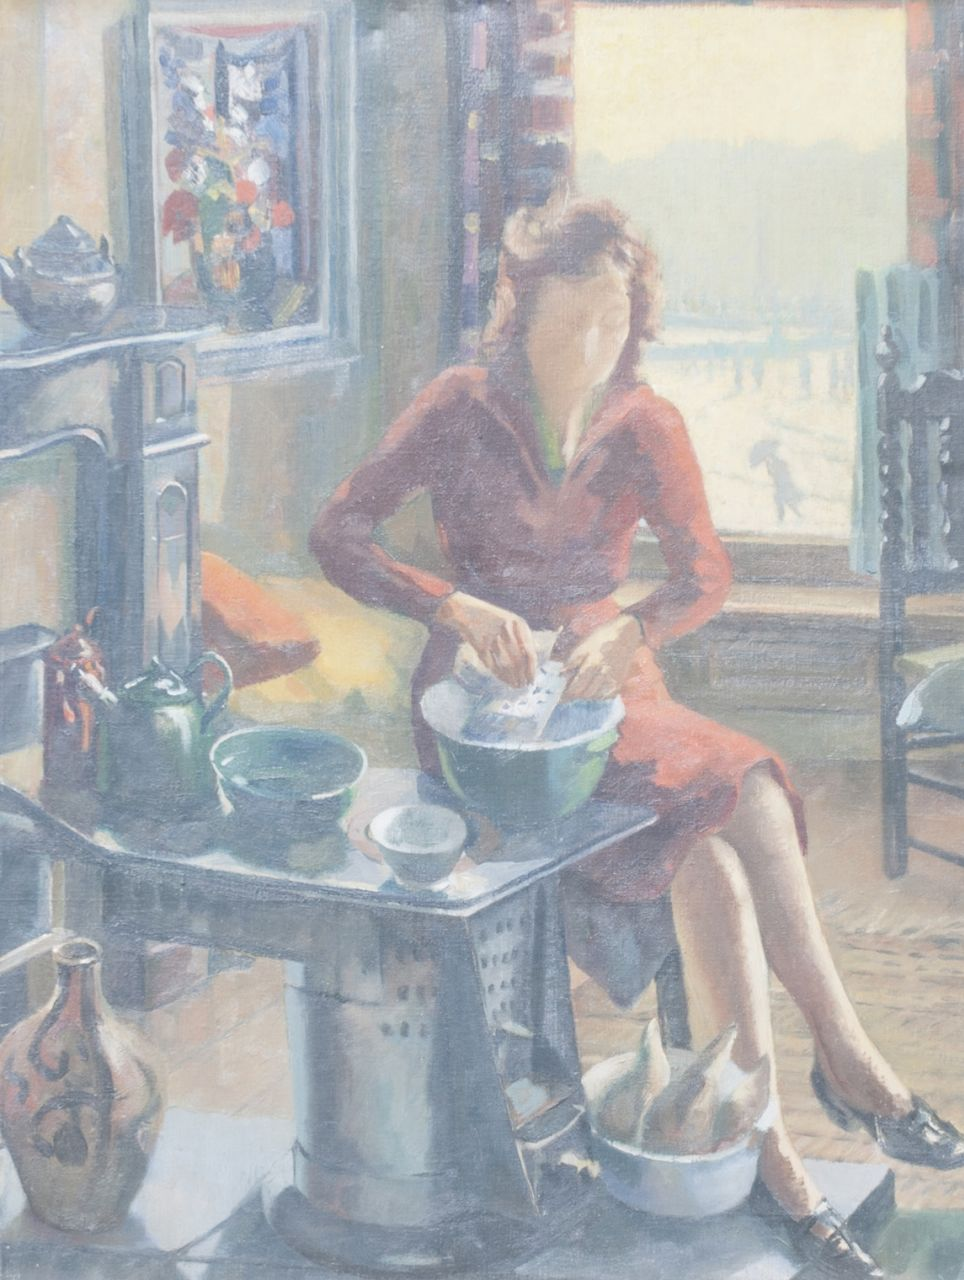 Toon Pluijmers | Prepairing the meal, oil on canvas, 80.3 x 60.4 cm, painted ca. 1945